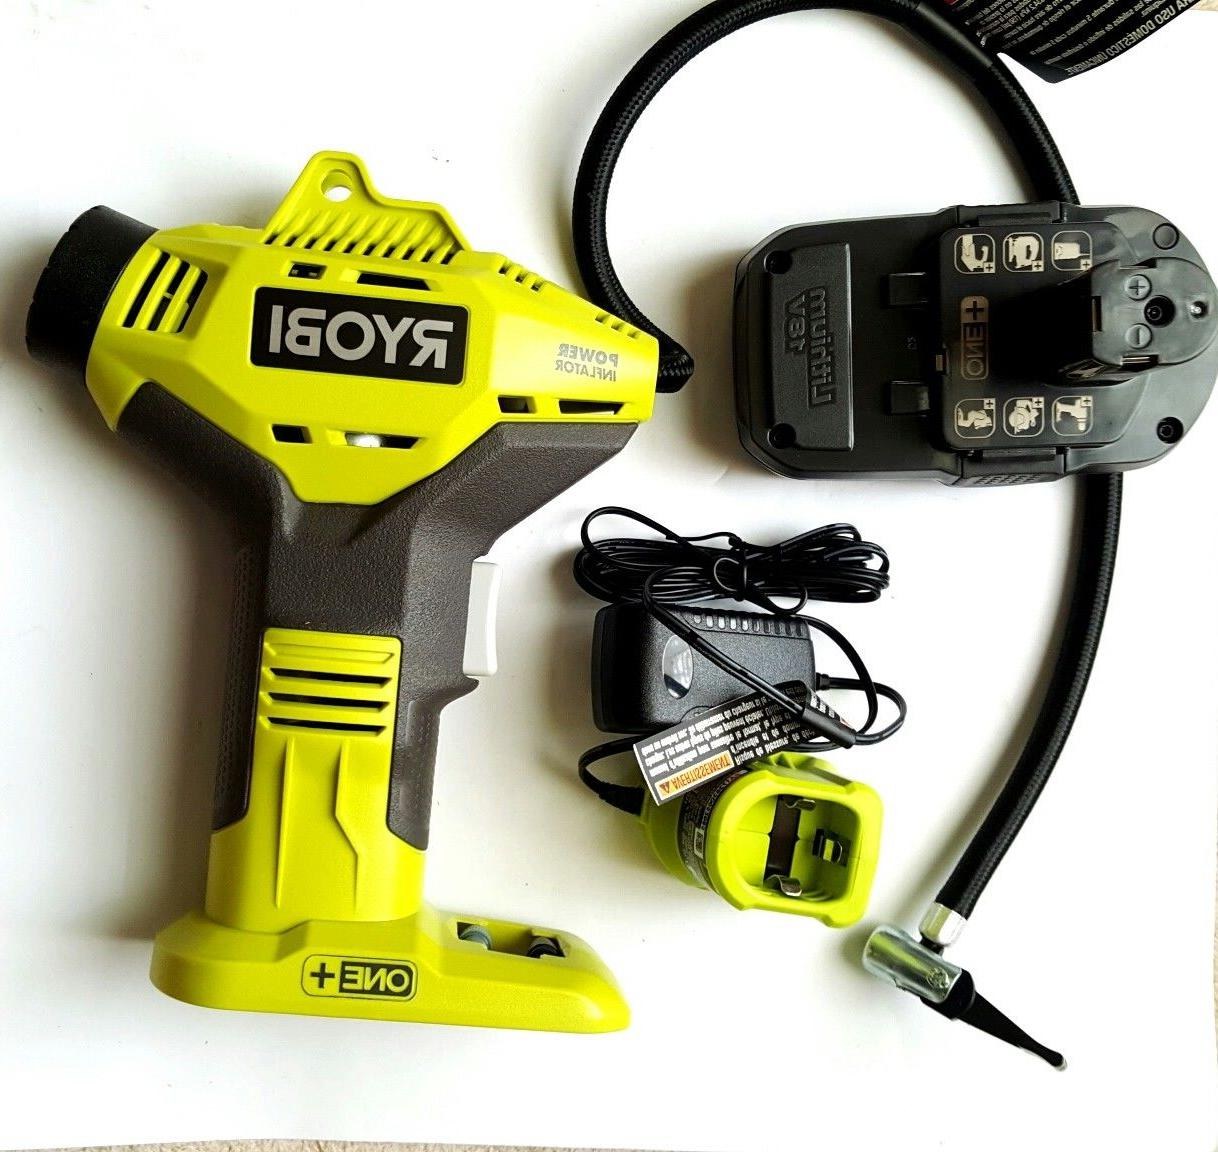 Ryobi 18V Portable Li-Ion Air Compressor Tire Inflator, Batt